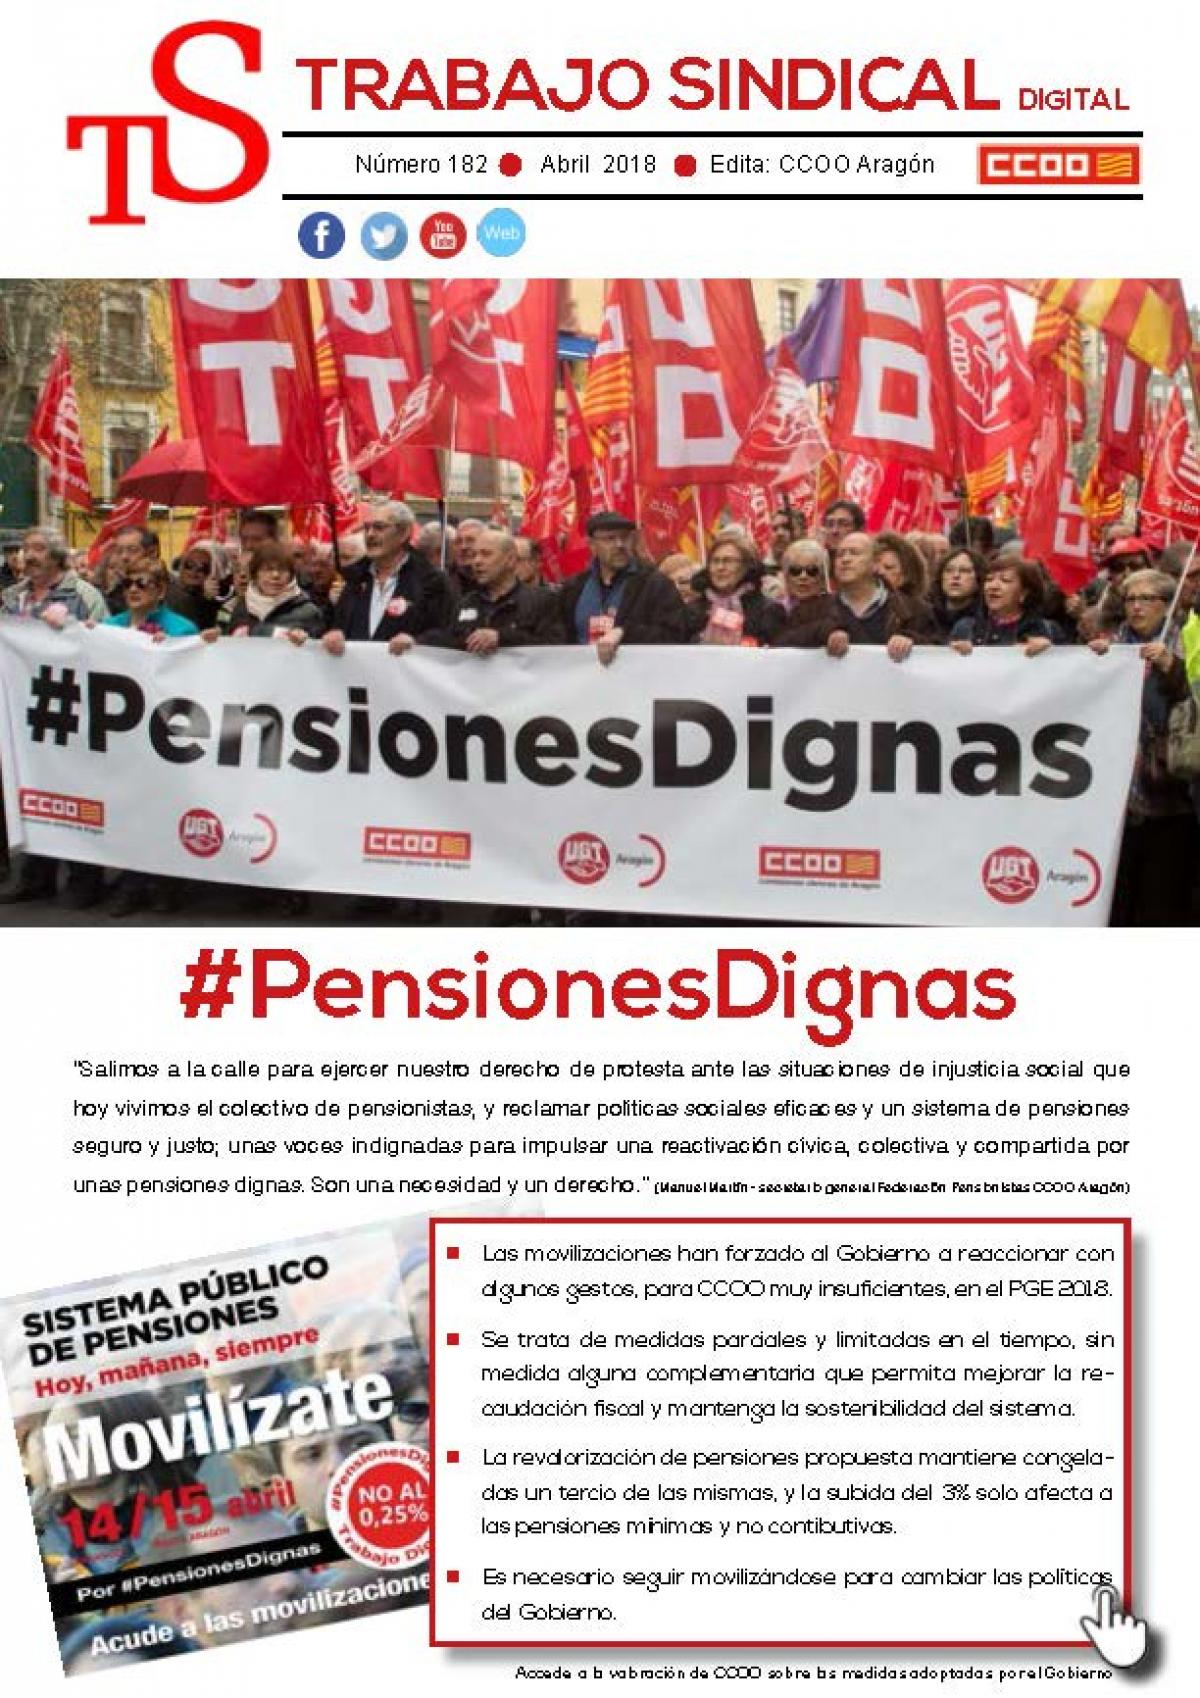 Trabajo Sindical - #PensionesDignas